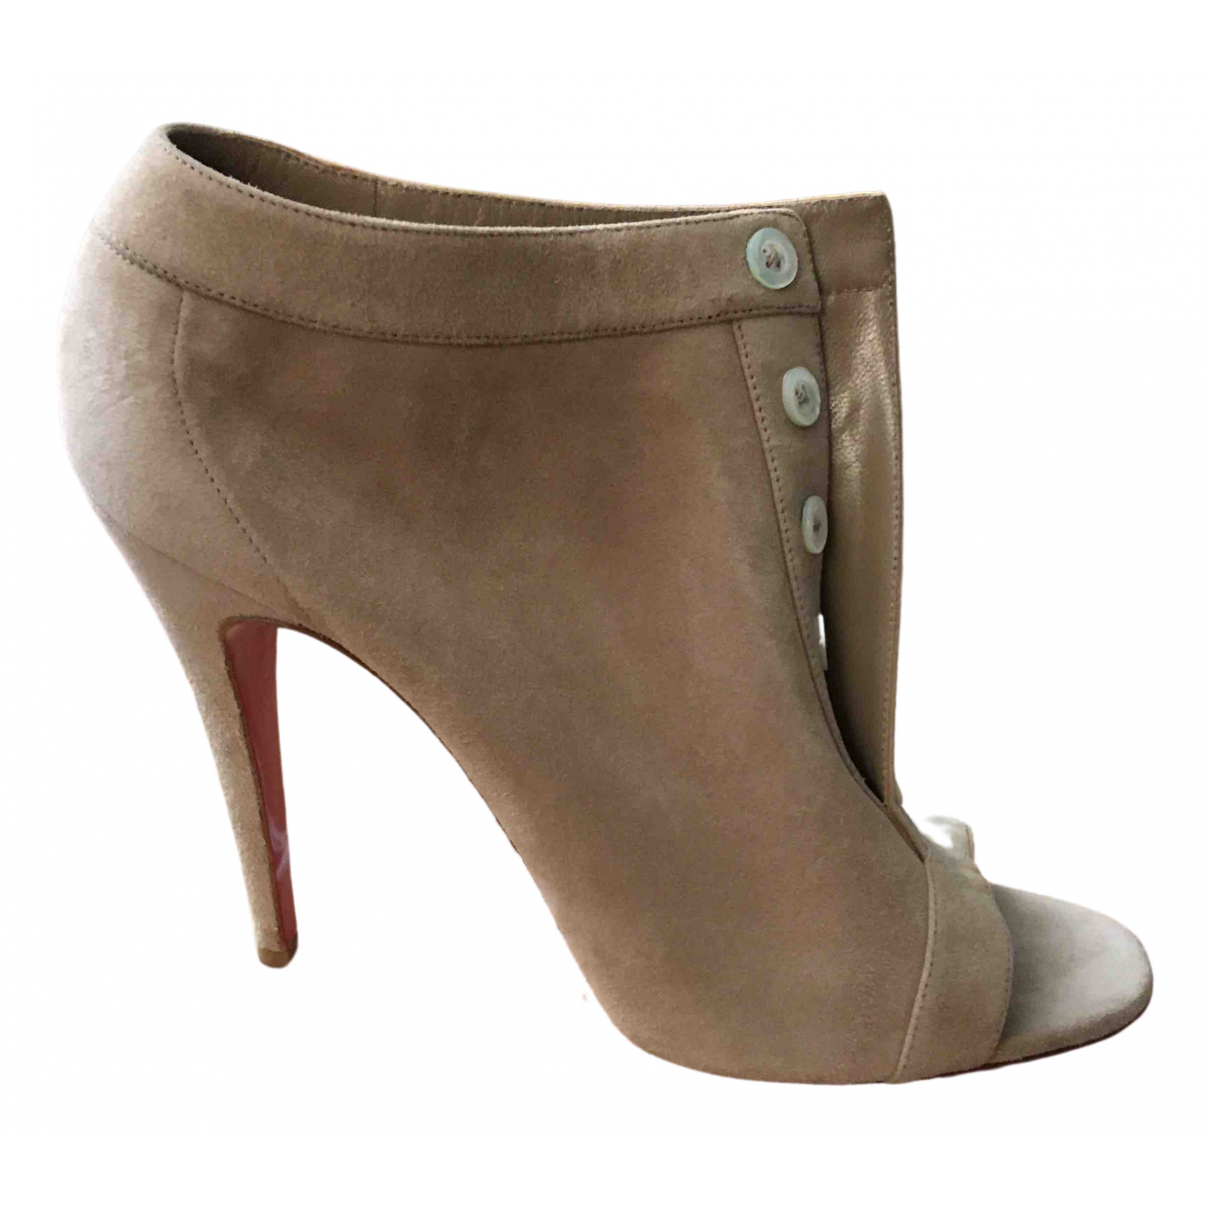 Christian Louboutin \N Beige Suede Ankle boots for Women 40 EU